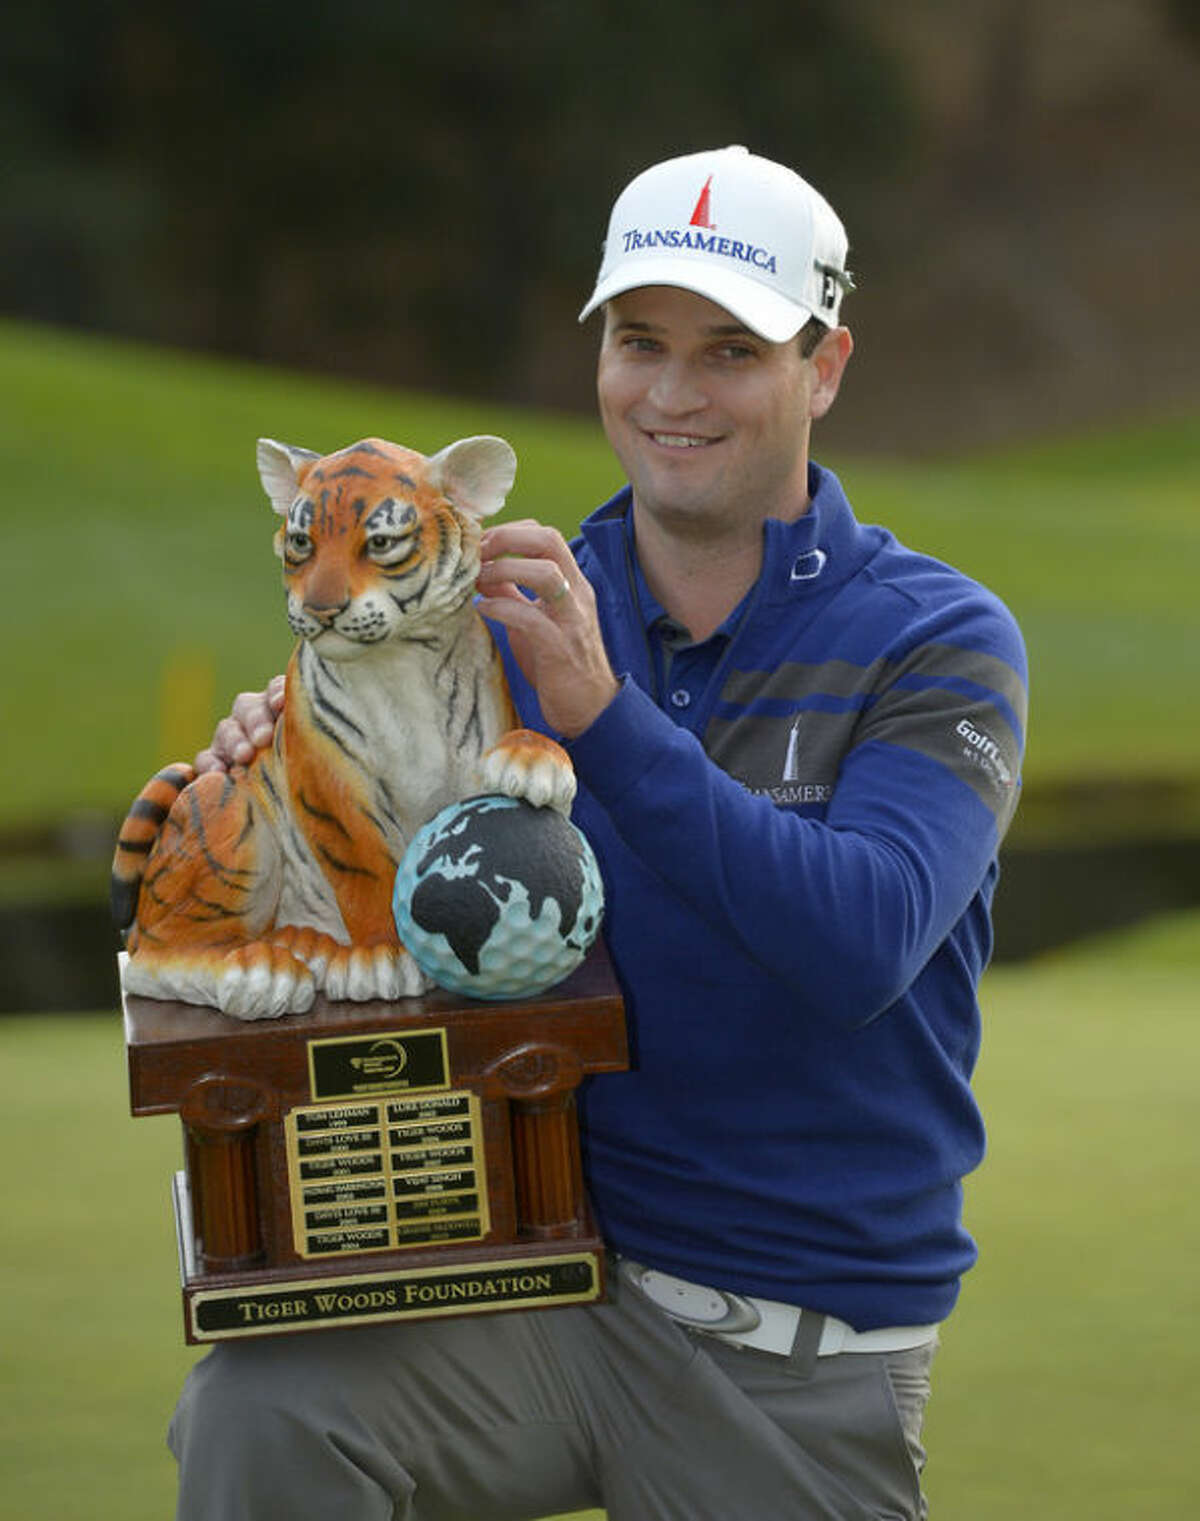 Zach Johnson scratches the head of the tiger on the trophy after winning a playoff against Tiger Woods in the final round of the Northwestern Mutual World Challenge golf tournament at Sherwood Country Club, Sunday, Dec. 8, 2013, in Thousand Oaks, Calif. (AP Photo/Mark J. Terrill)